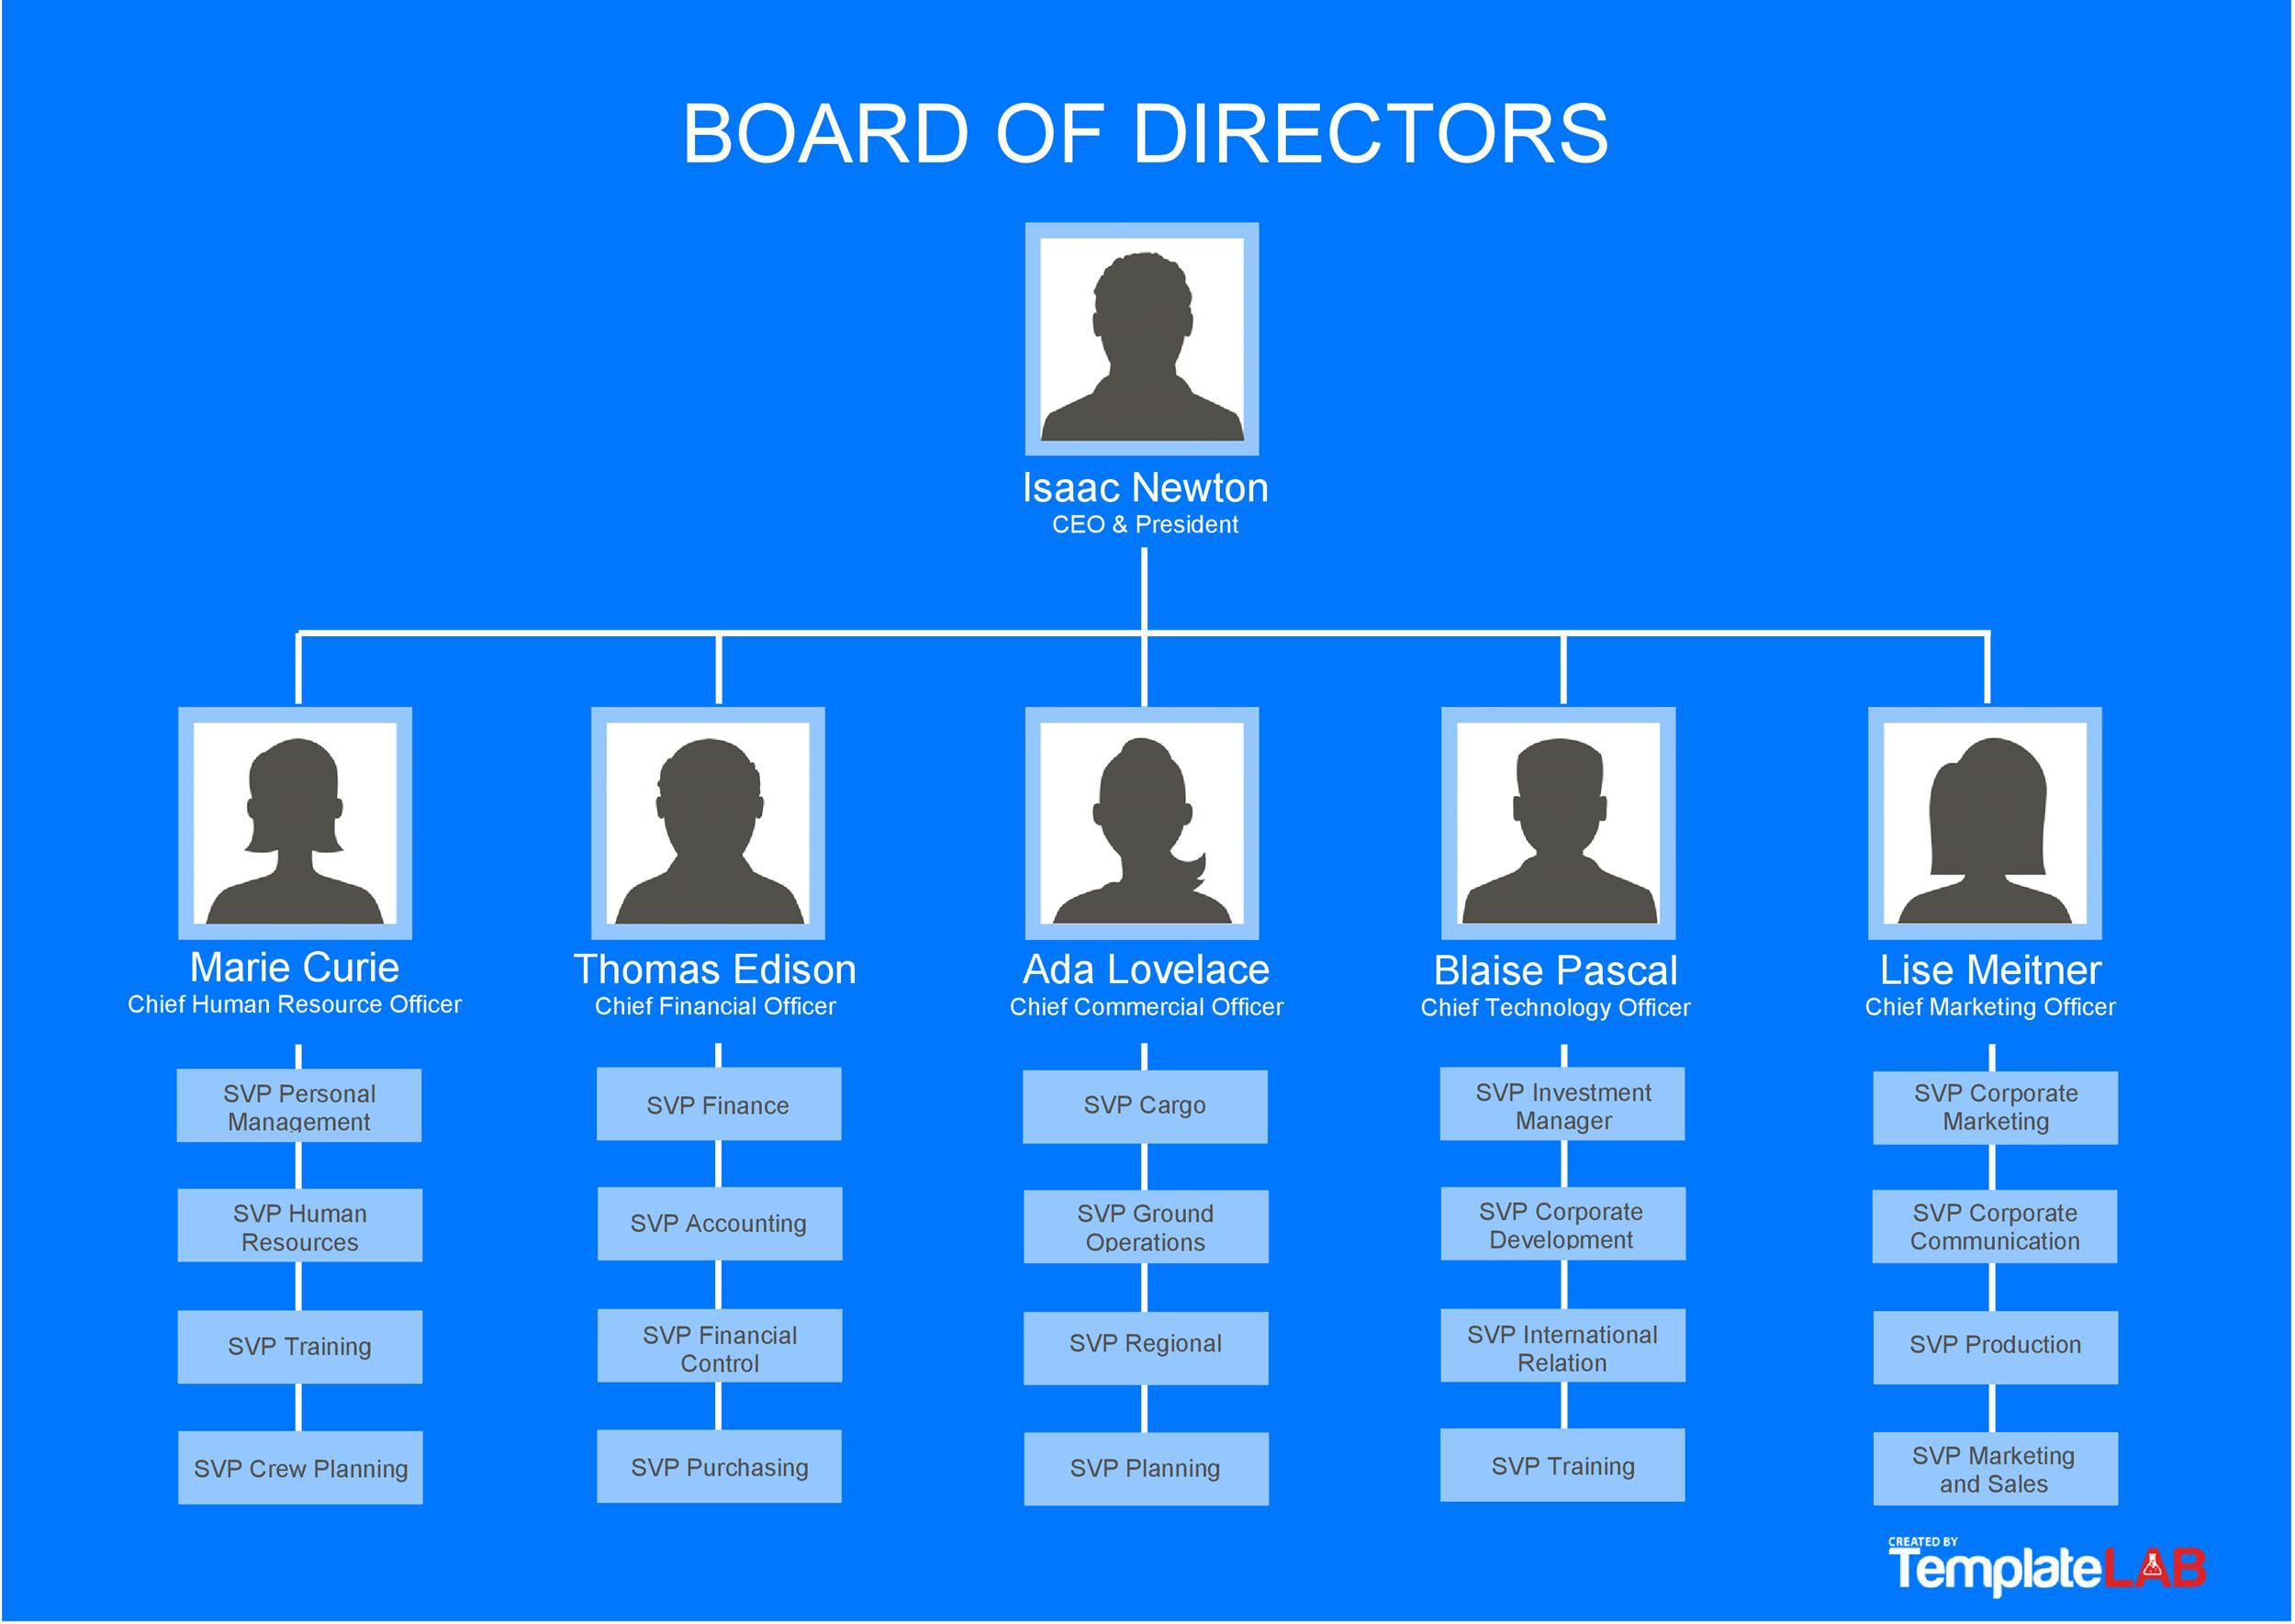 001 Stirring Organizational Chart Template Word Image  Simple Free Download 2013 2010Full